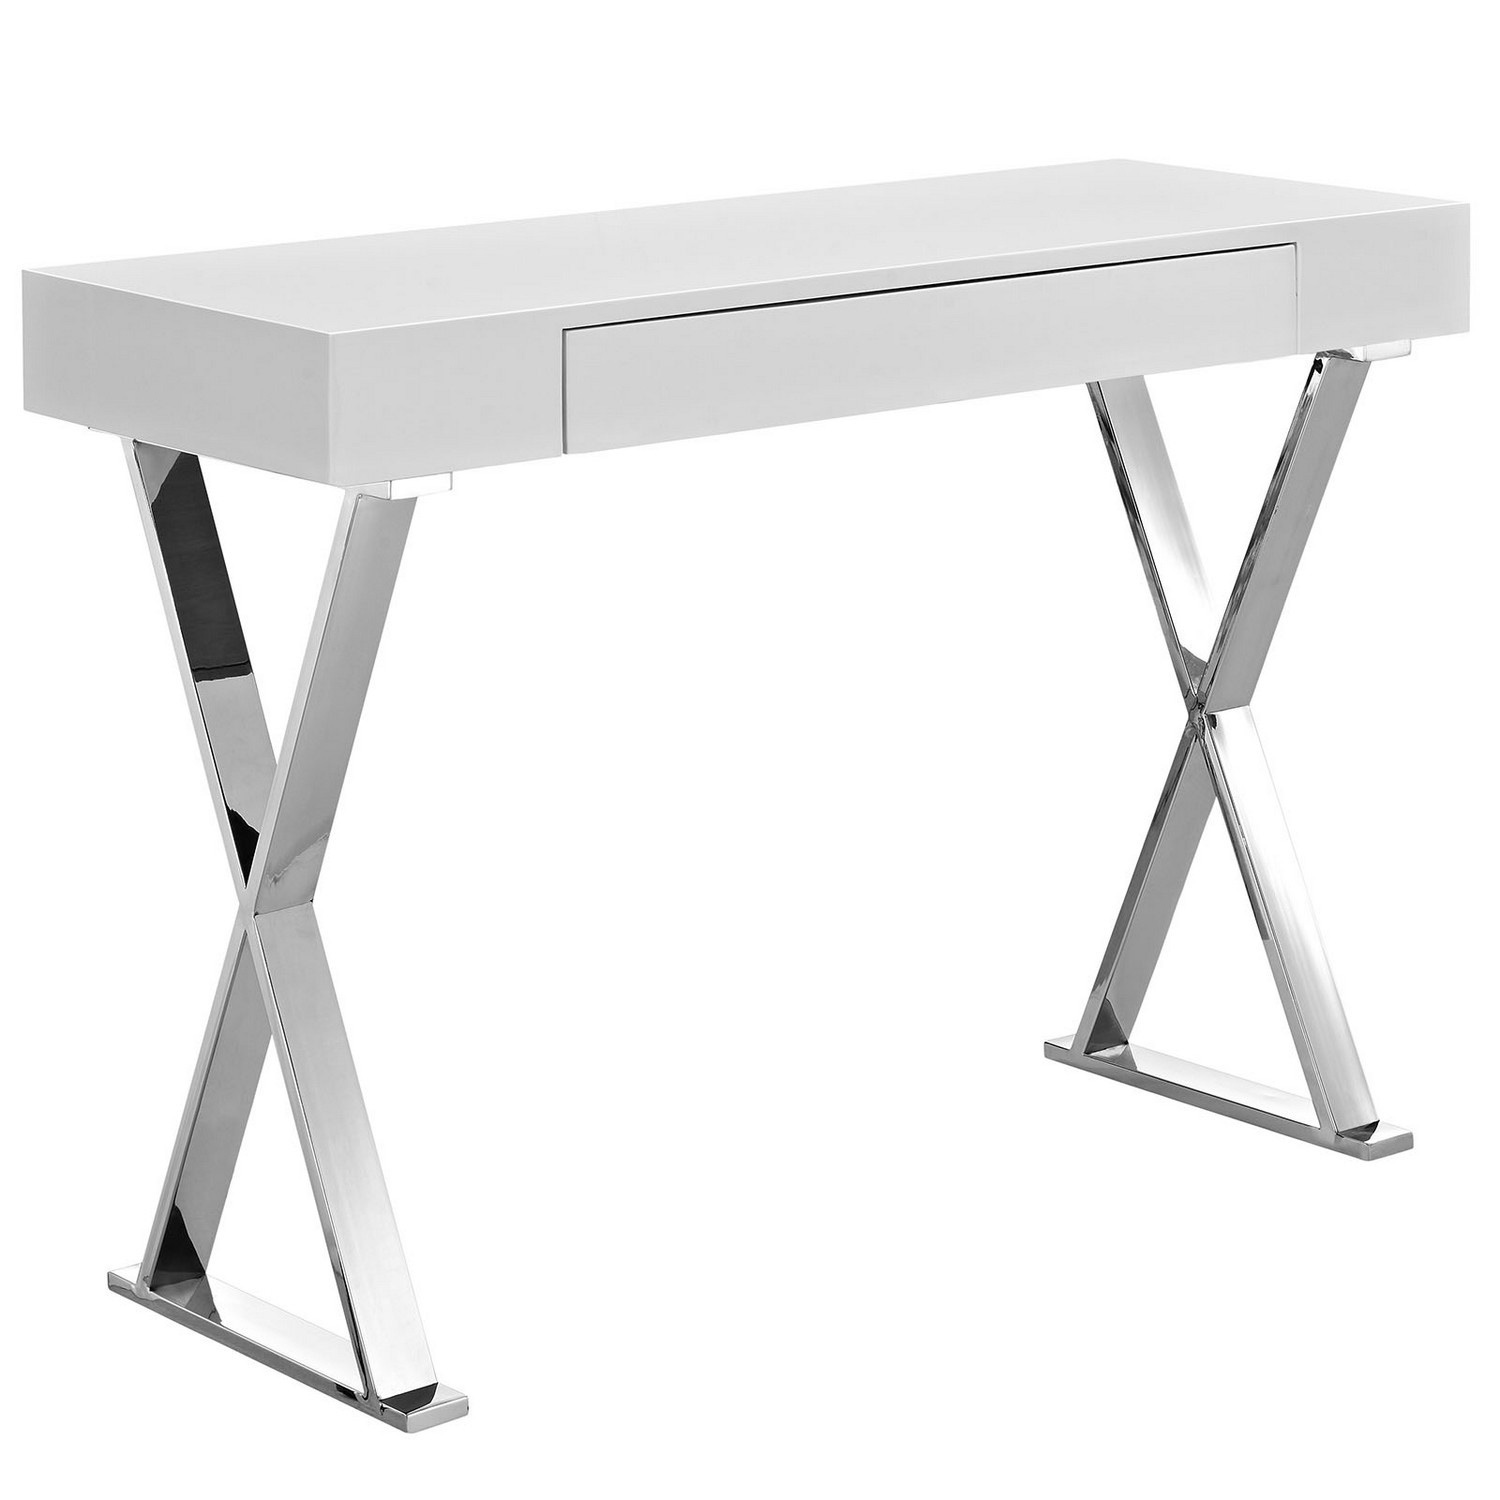 Modway Sector Console Table - White